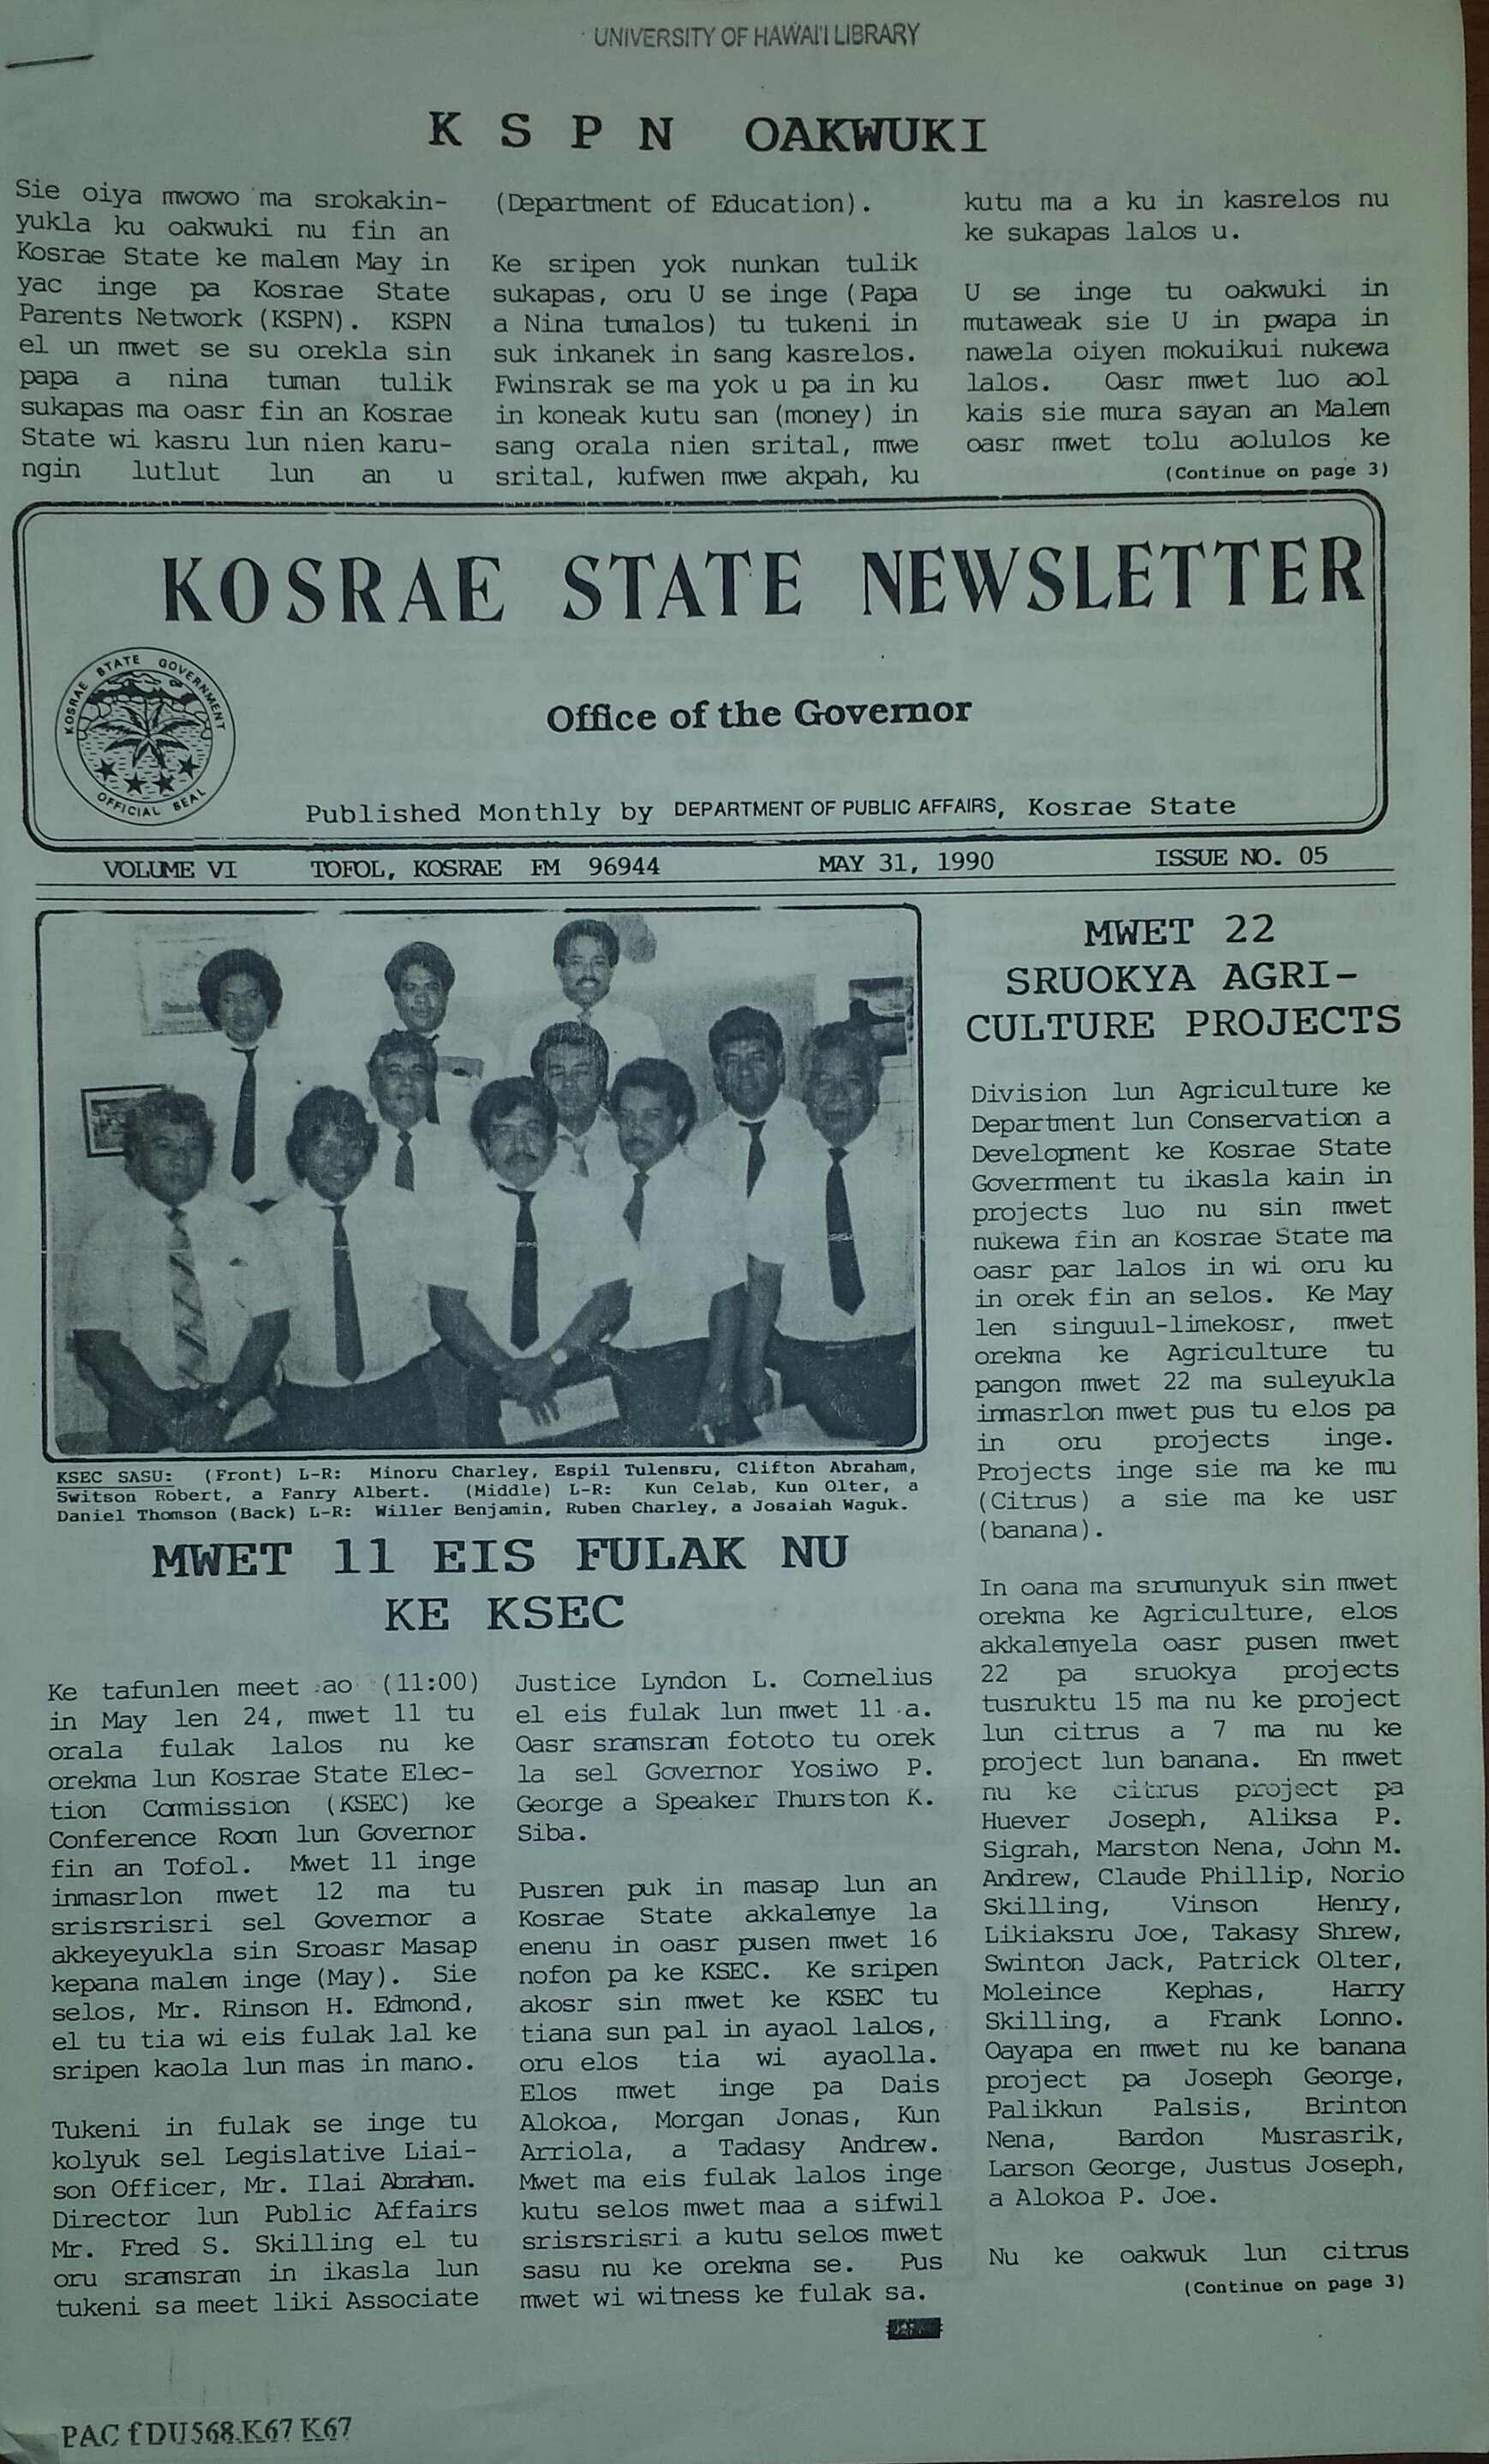 Scan of the 'Kosrae State Newsletter'